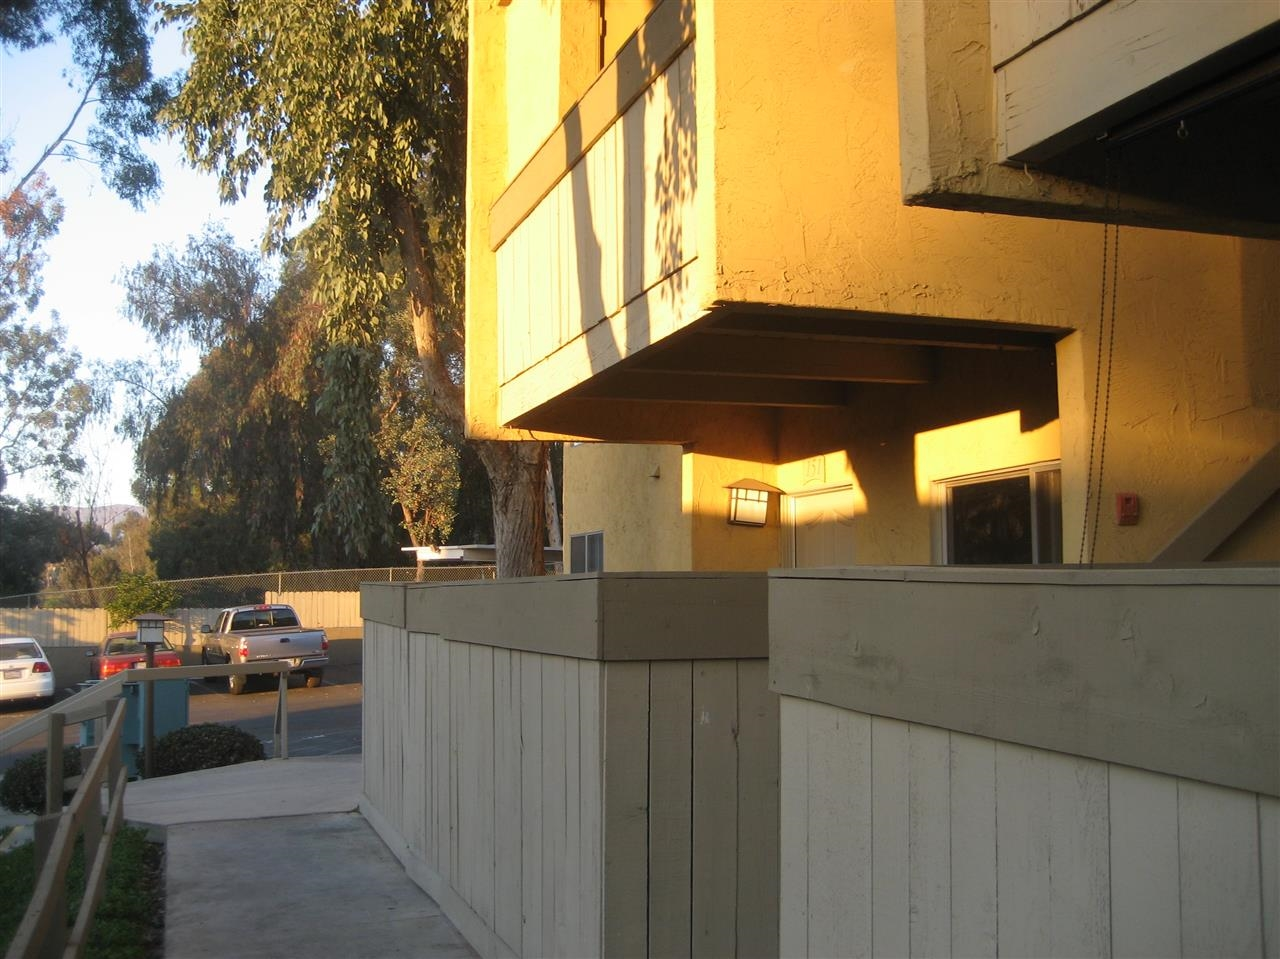 Photo 3: DEL CERRO Condo for sale : 2 bedrooms : 7767 Margerum Ave #151 in San Diego